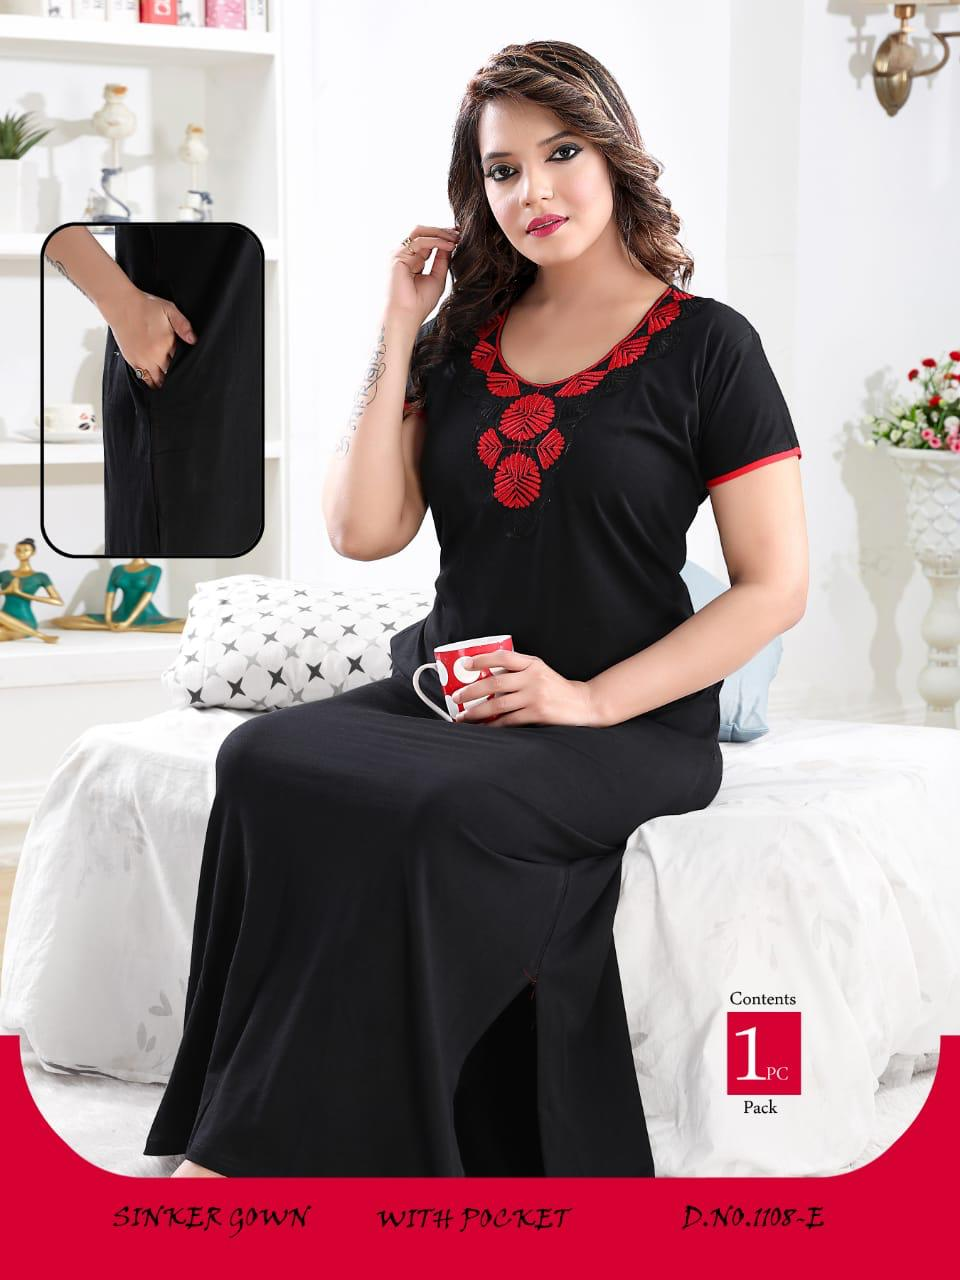 New Gown Nighty 2 collection 4